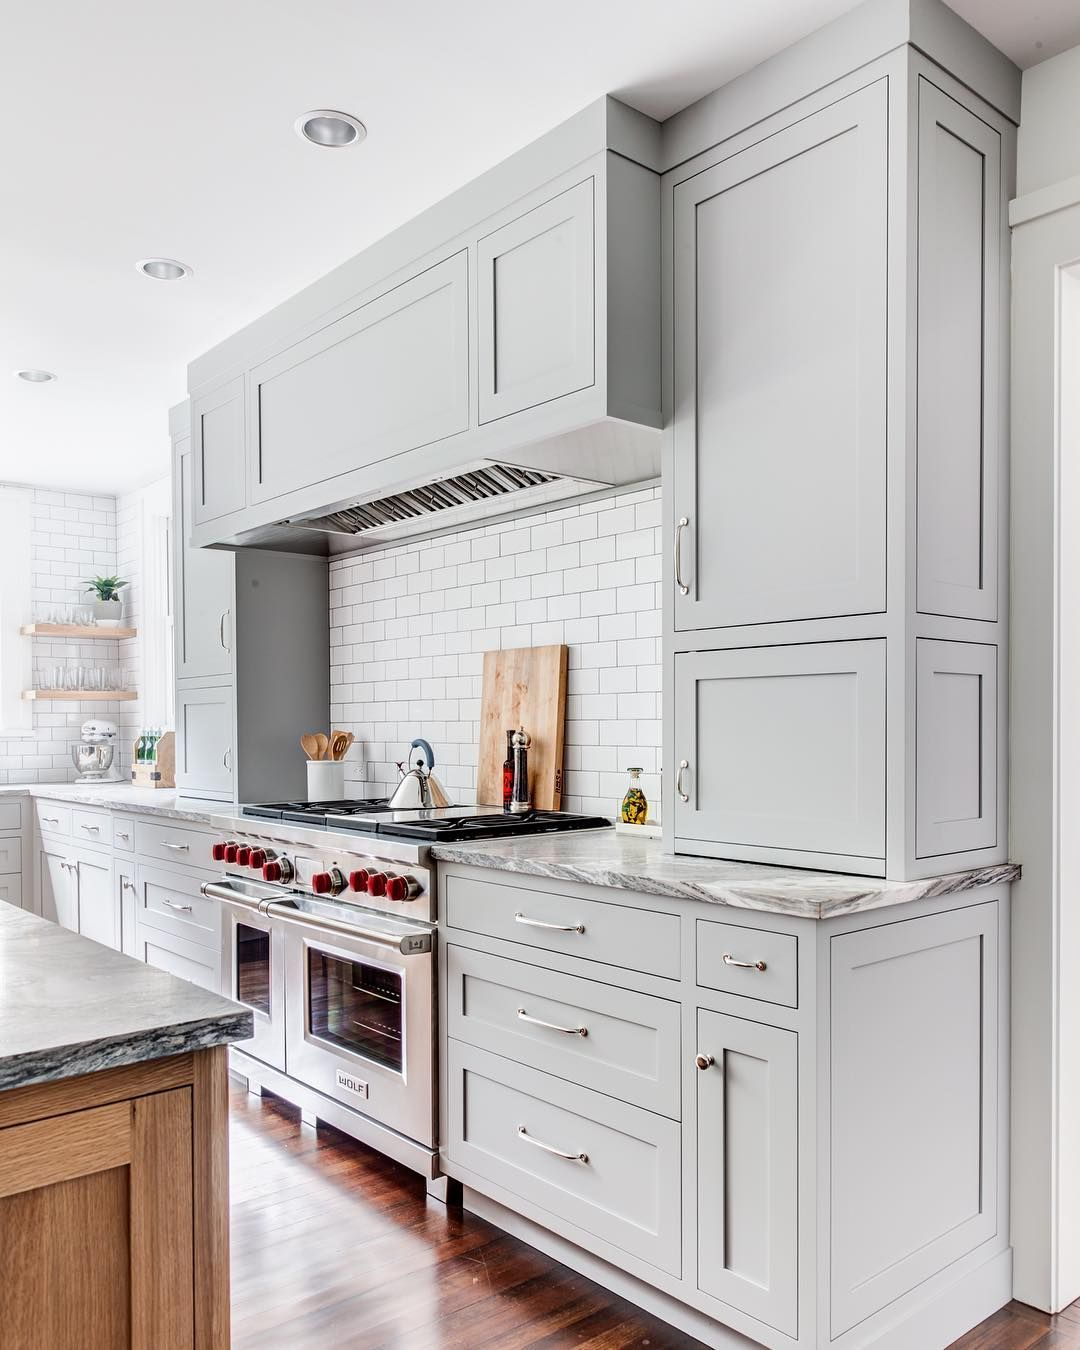 Best Cabinet Color Is Benjamin Moore Coventry Gray Farmhouse 400 x 300